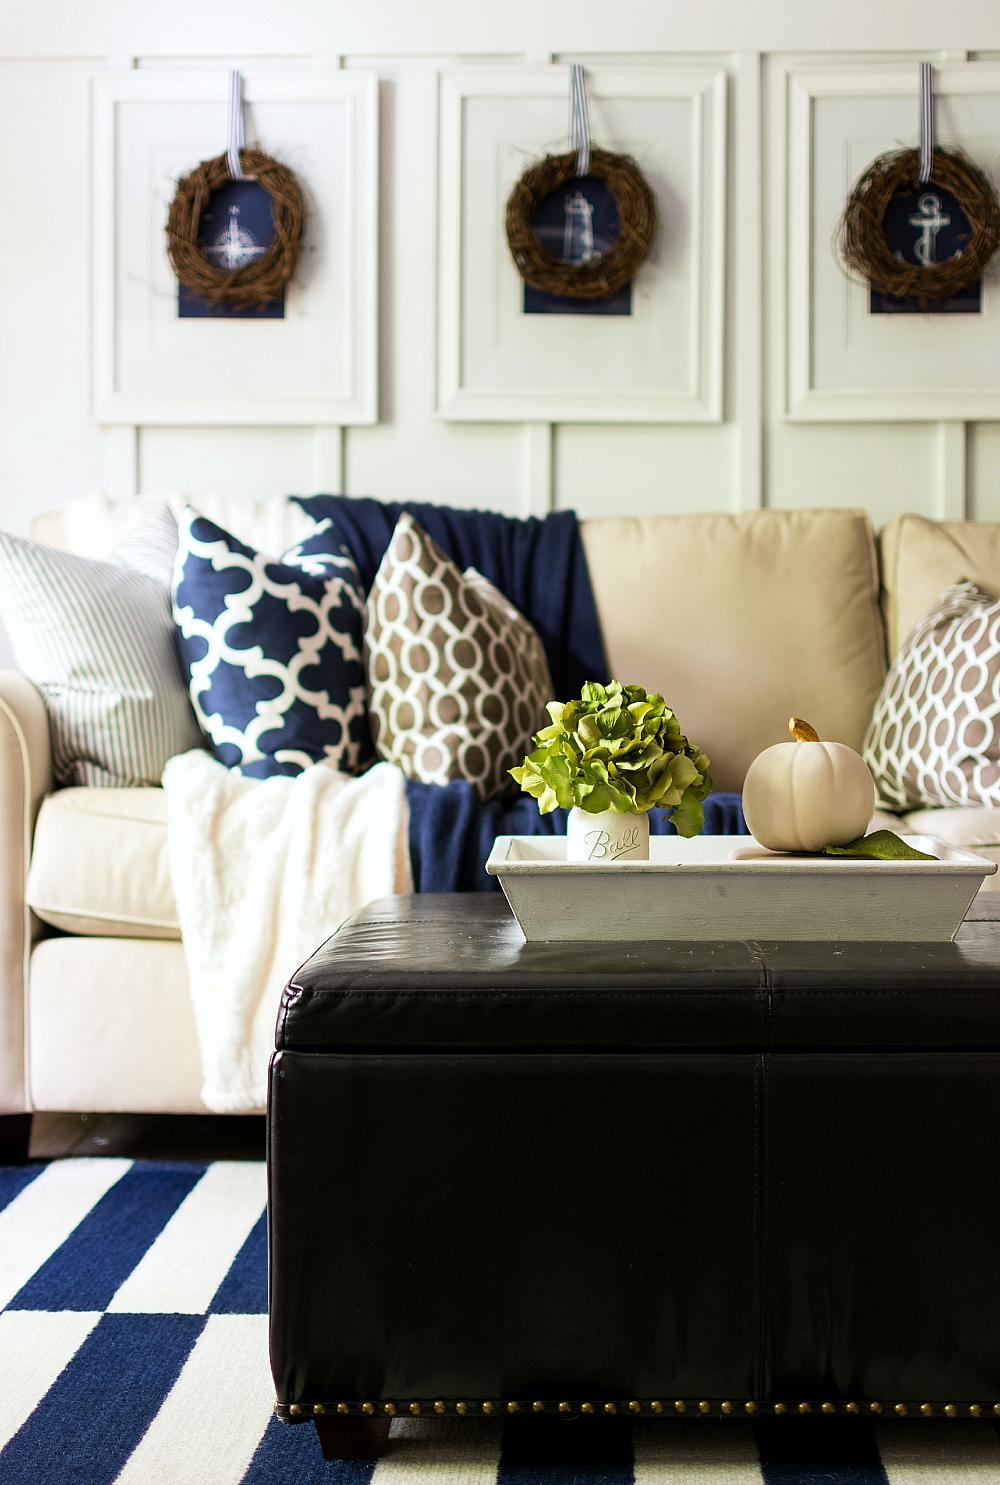 Fall Decorating Using Navy and Brown and White: Board and Batten Living Room Decorated for Fall